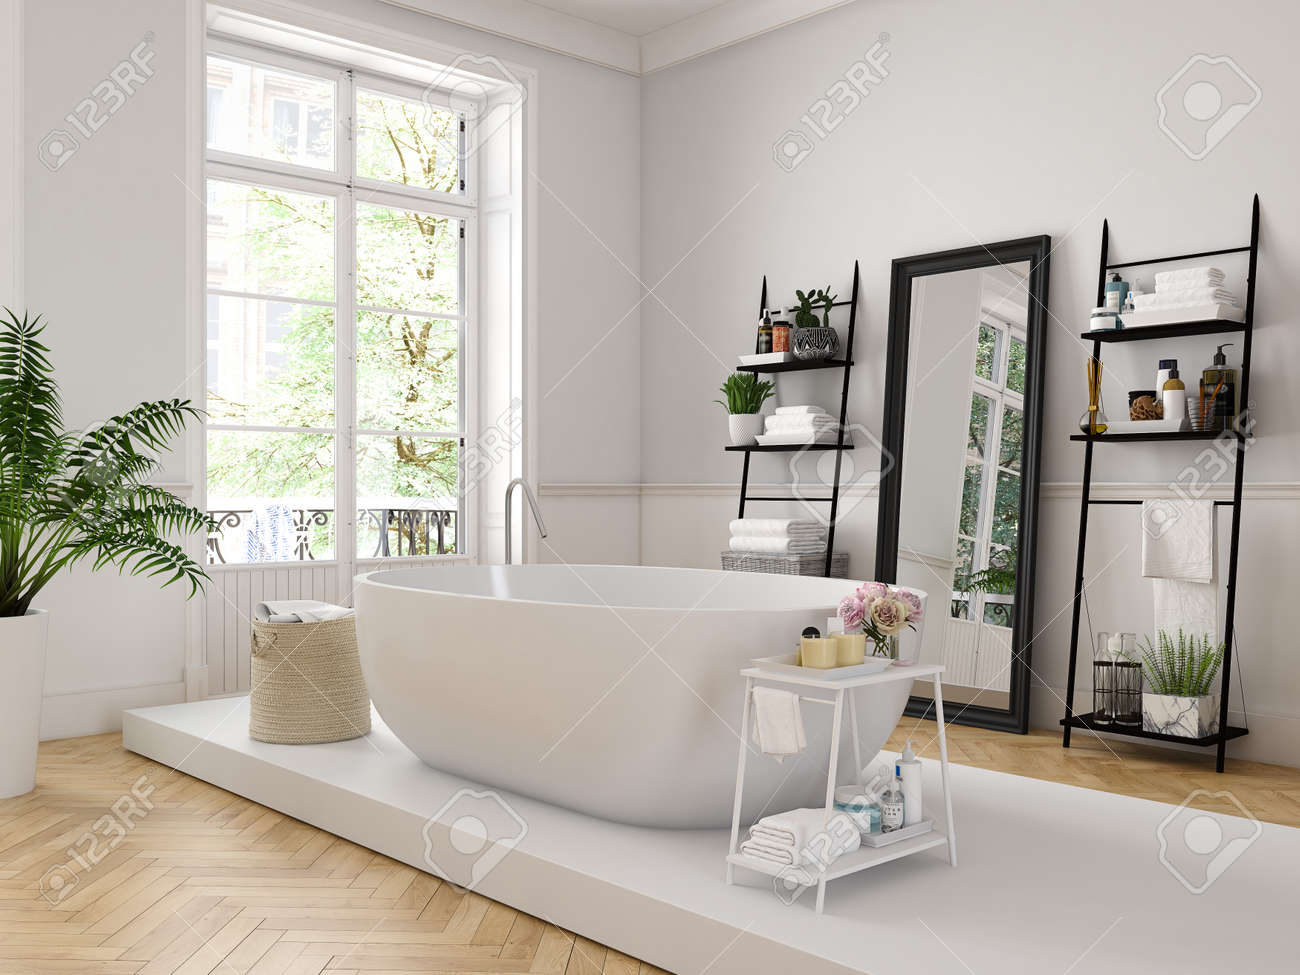 3d rendering. classic luxury bathroom with a white bathtube. - 83310357